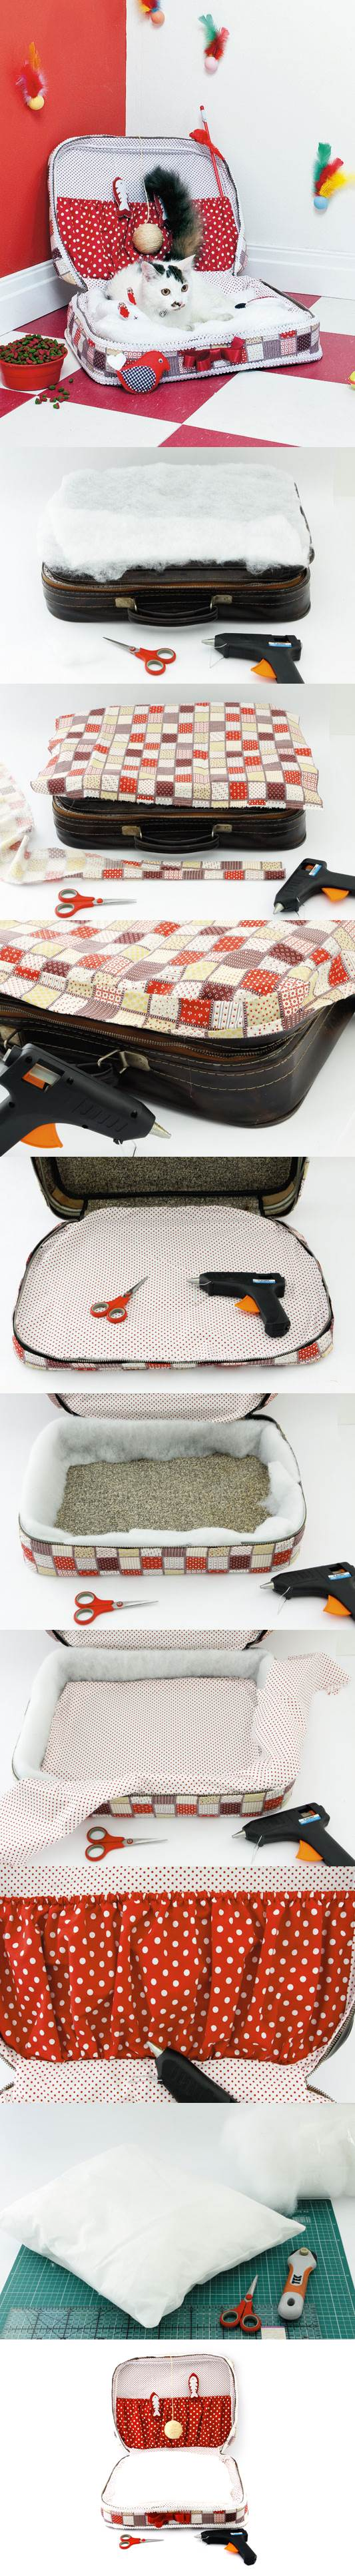 DIY Cat Bed from Old Suitcase 2